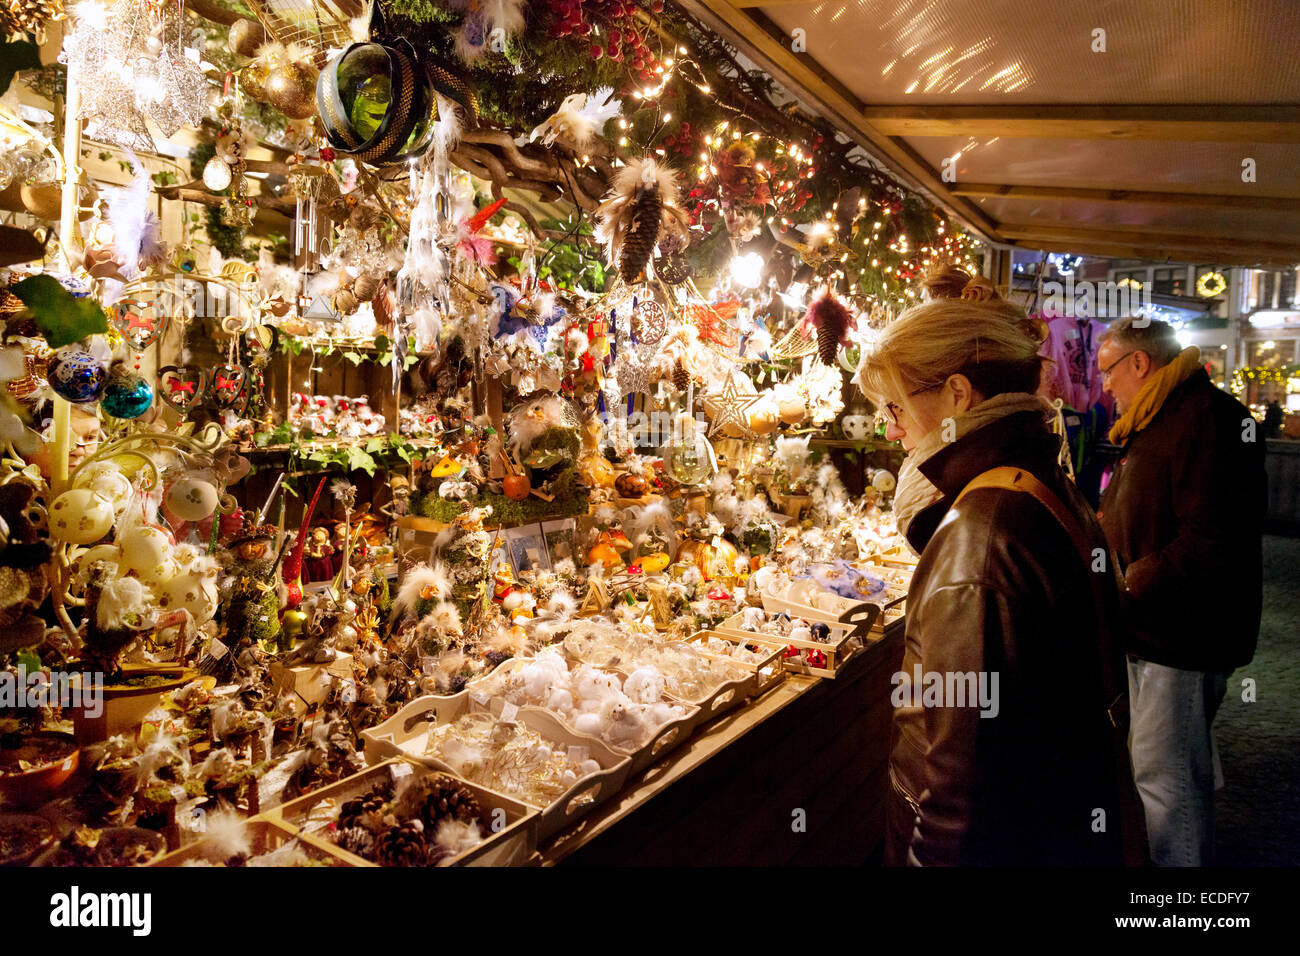 Bruges Christmas Market Images.A Woman Shopping At A Stall The Christmas Market Markt